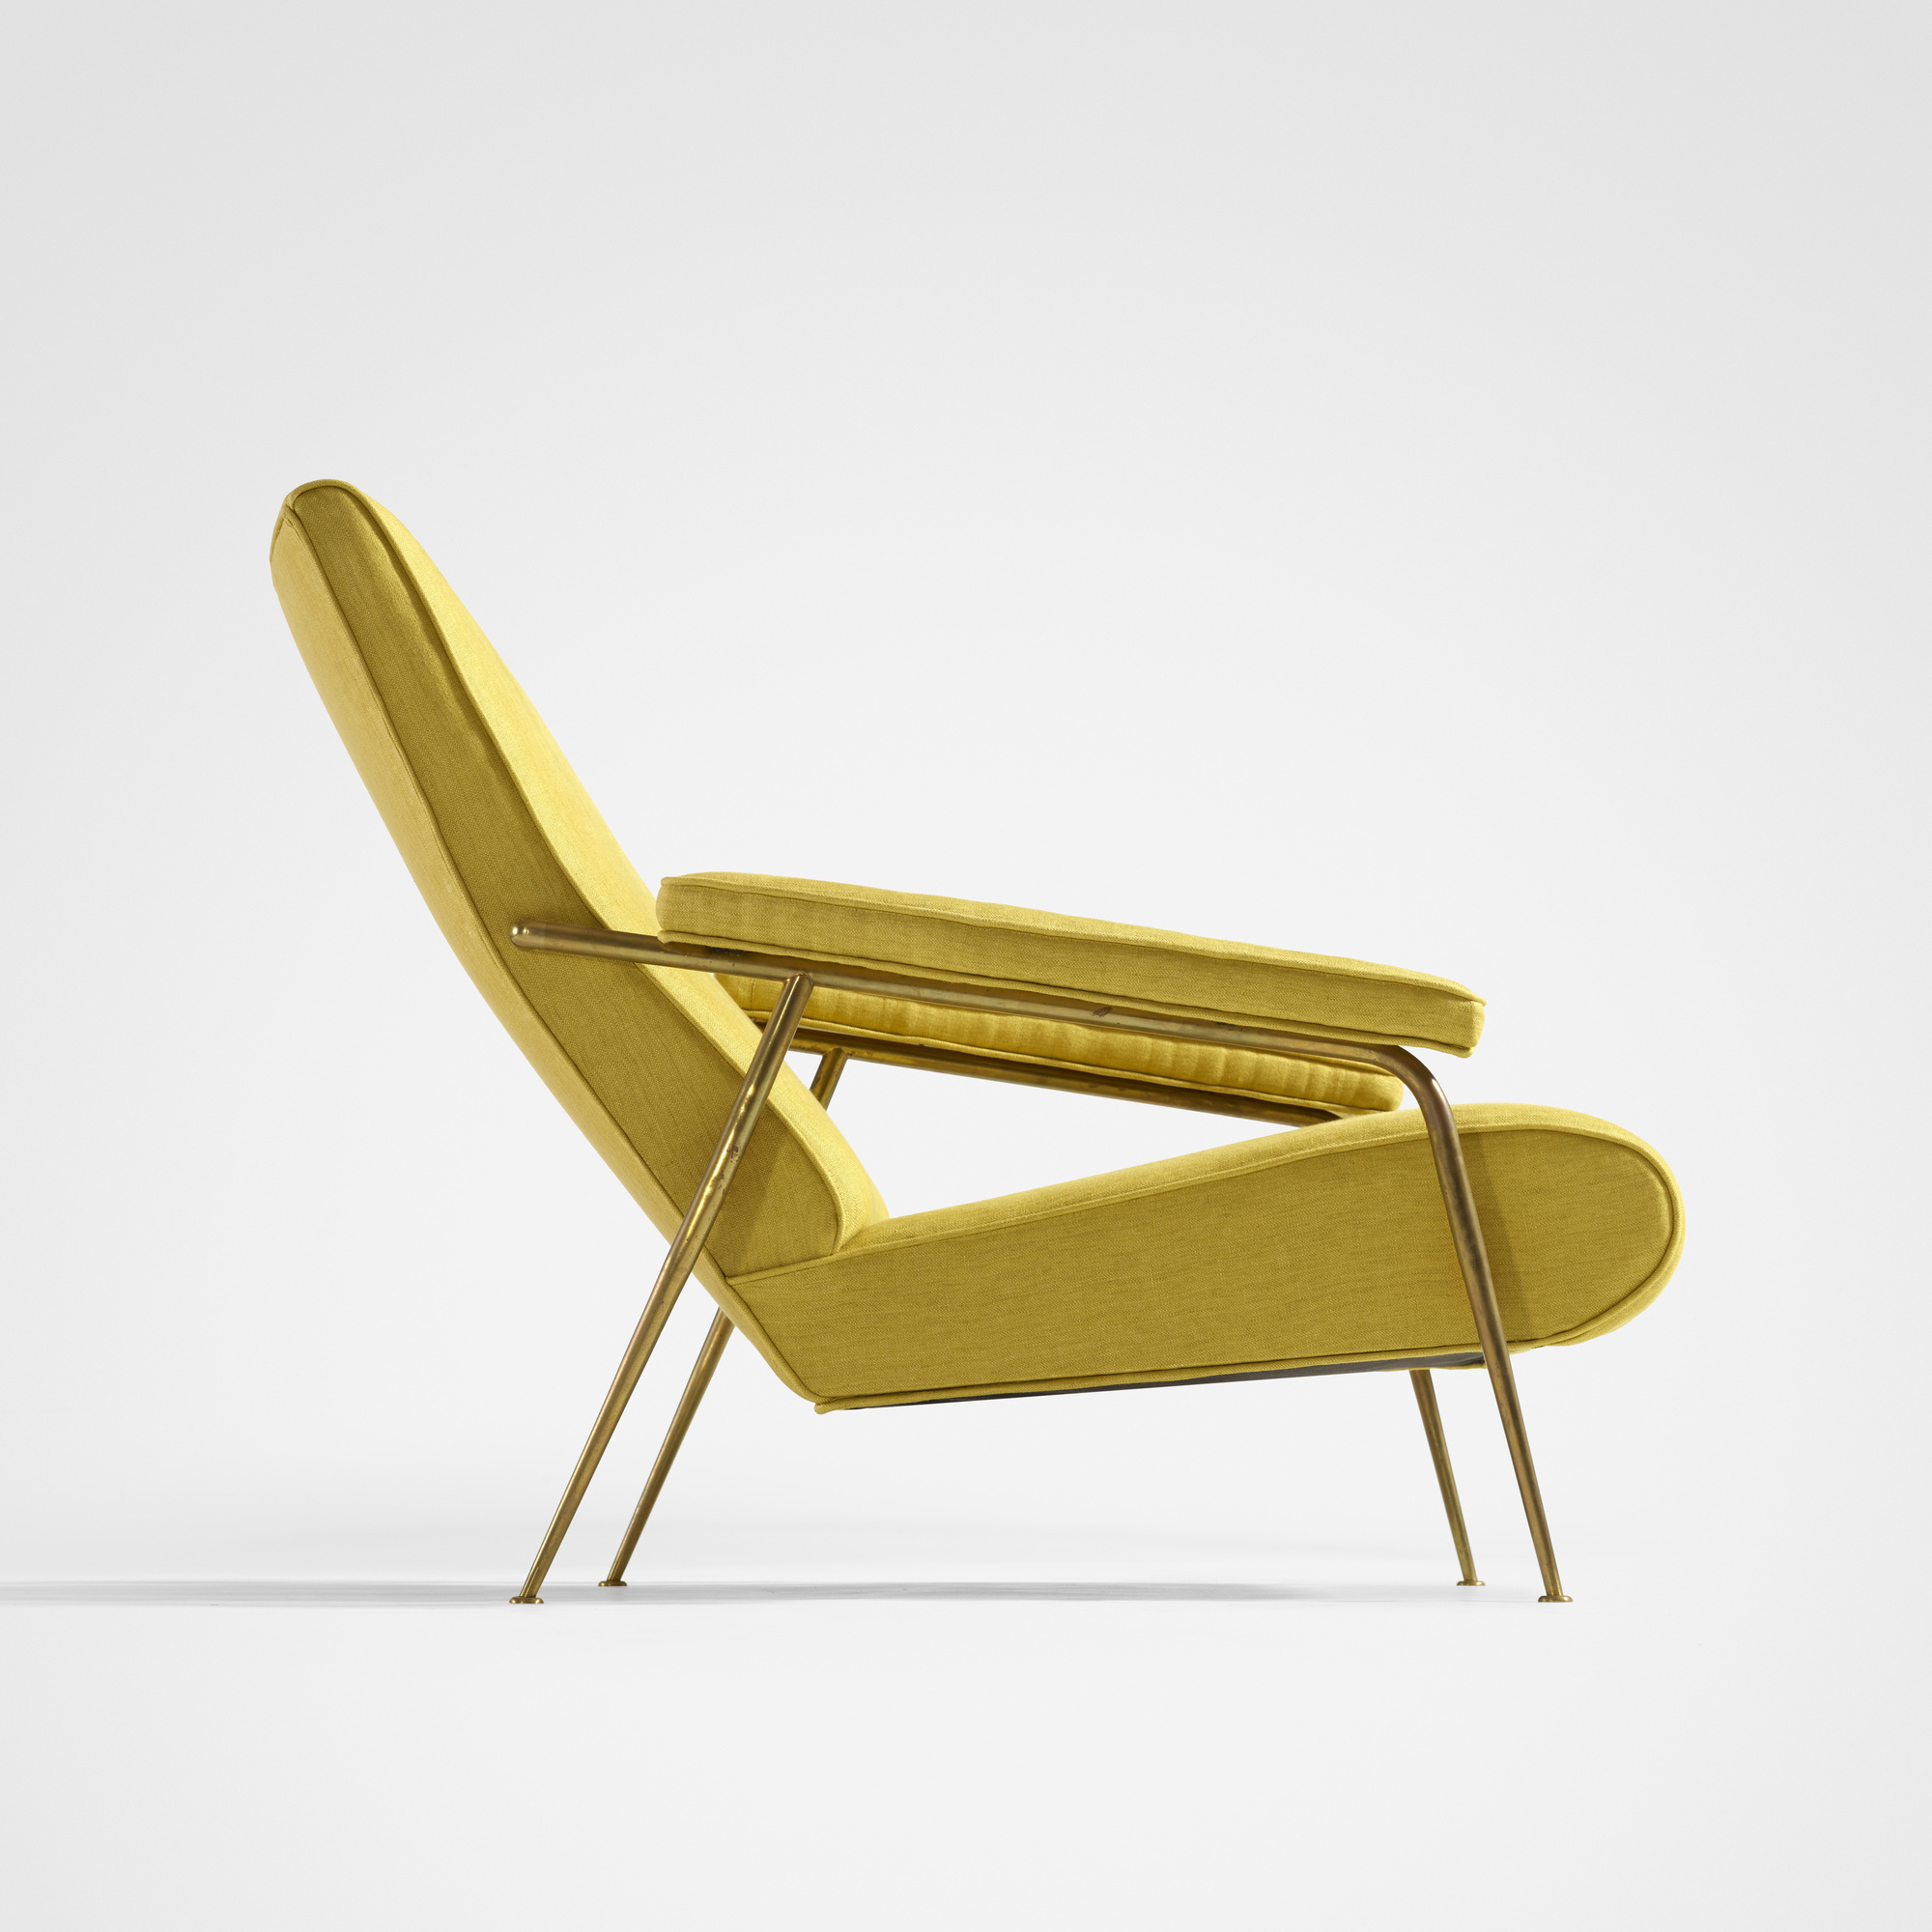 13: Gio Ponti / Distex lounge chair (5 of 5)